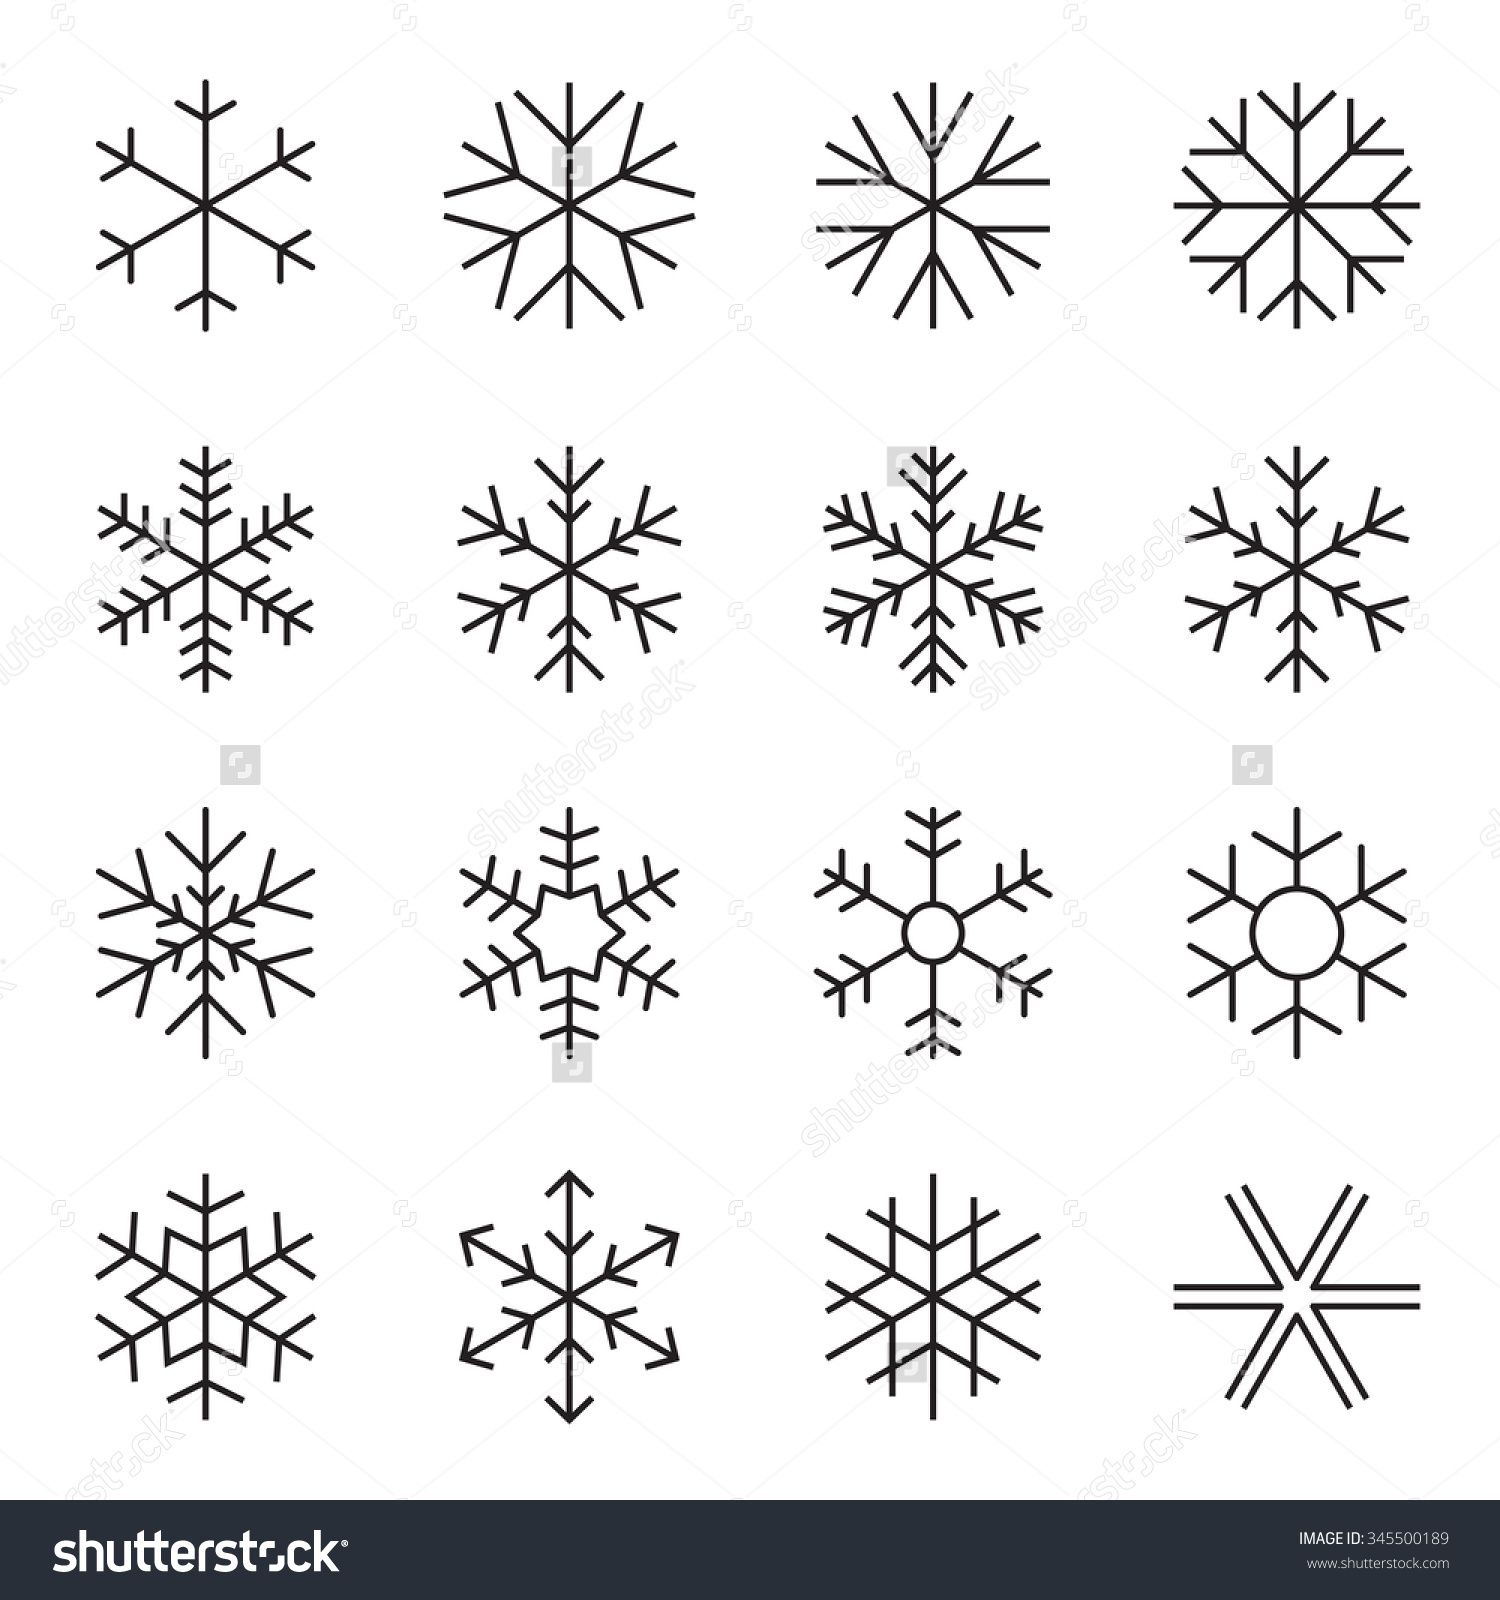 Epingle Par Fati Sur Ce1 Flocon De Neige Simple Flocon De Neige Dessin Flocon De Neige Dessin Facile